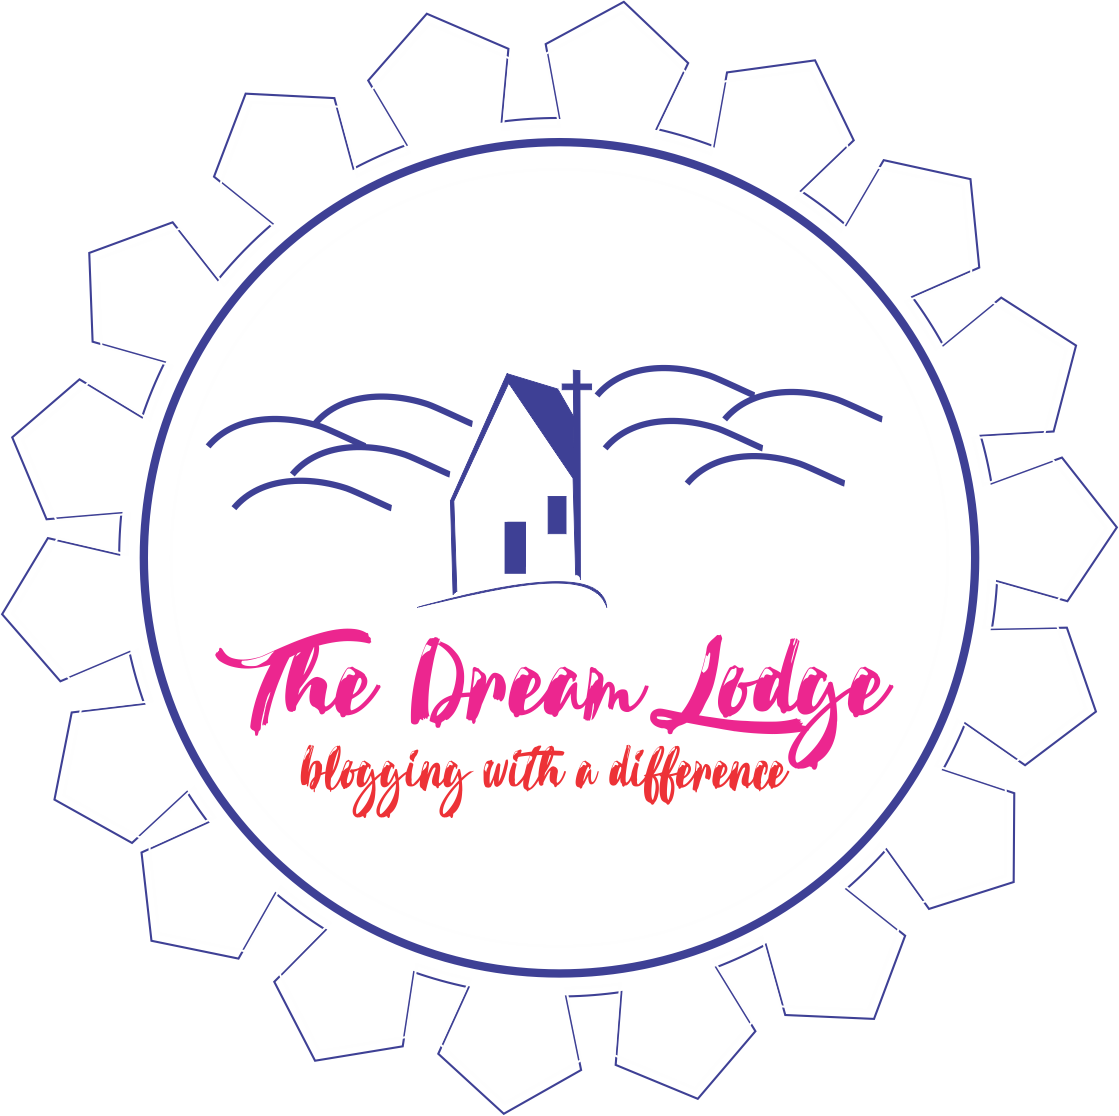 The Dream Lodge